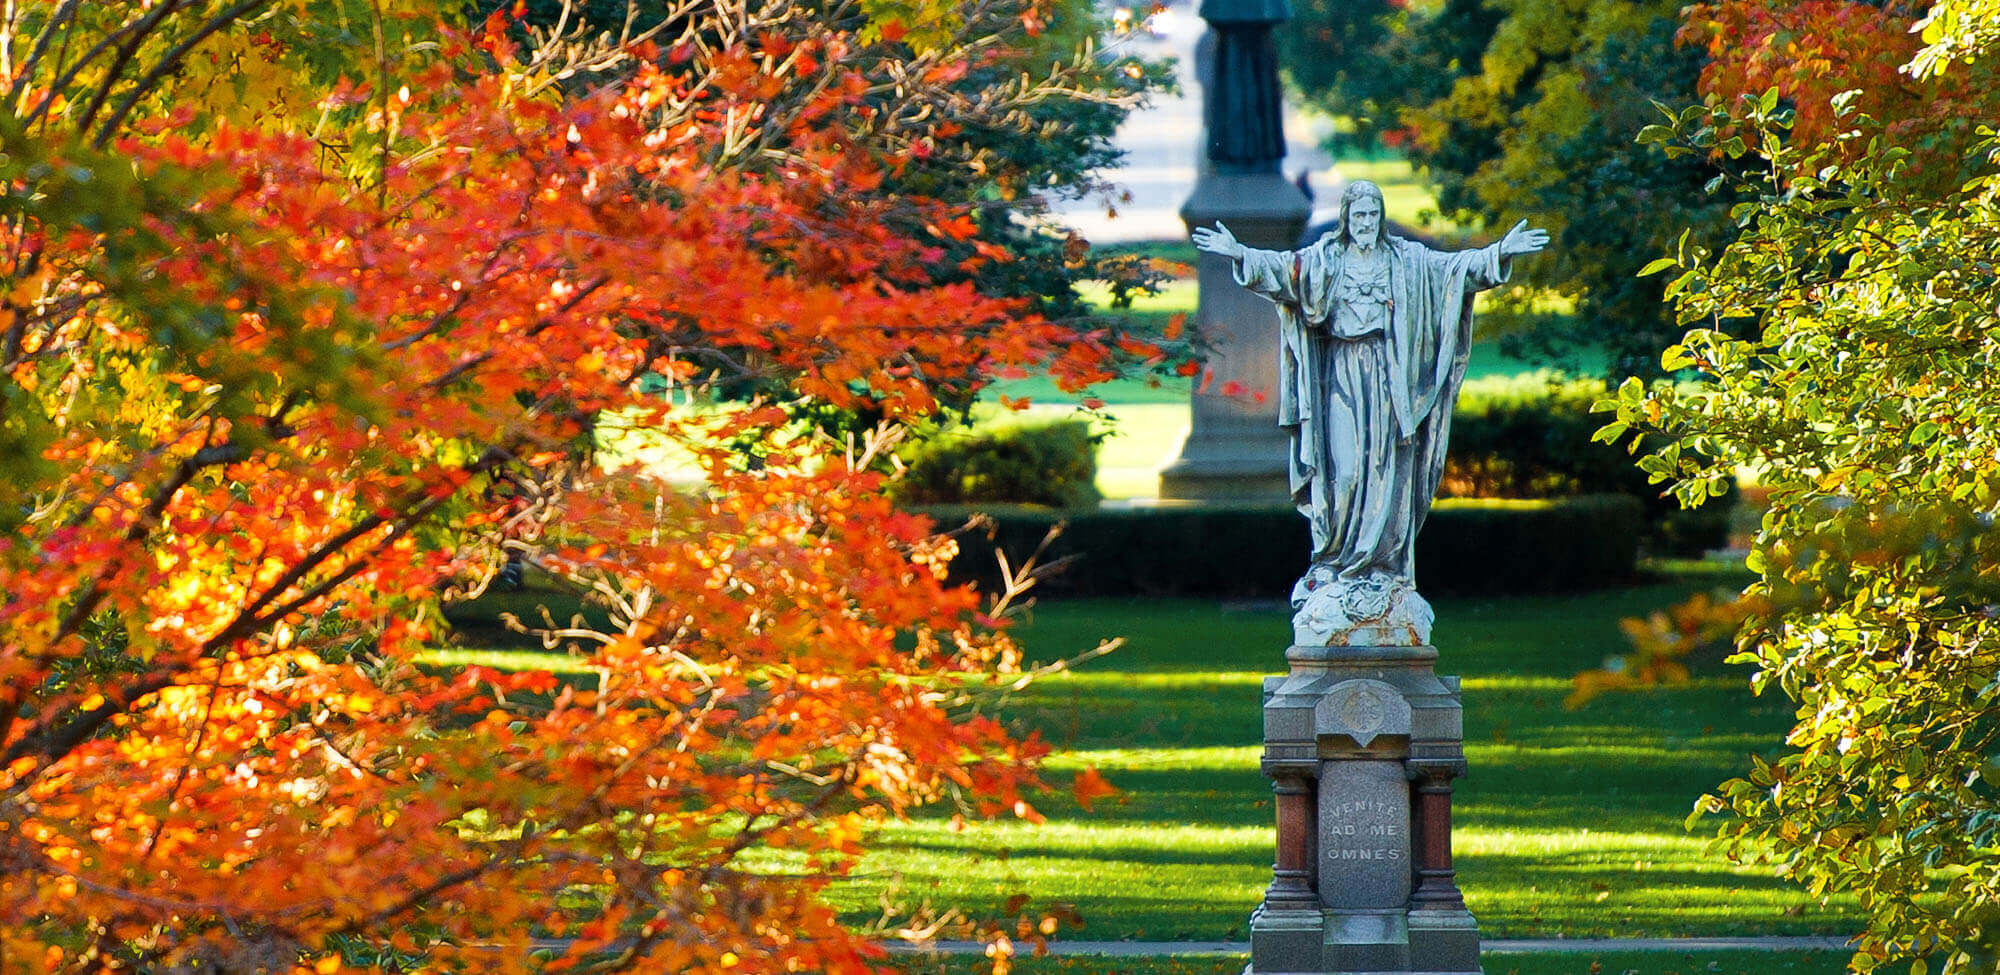 Statue of Jesus with open arms on a fall day.